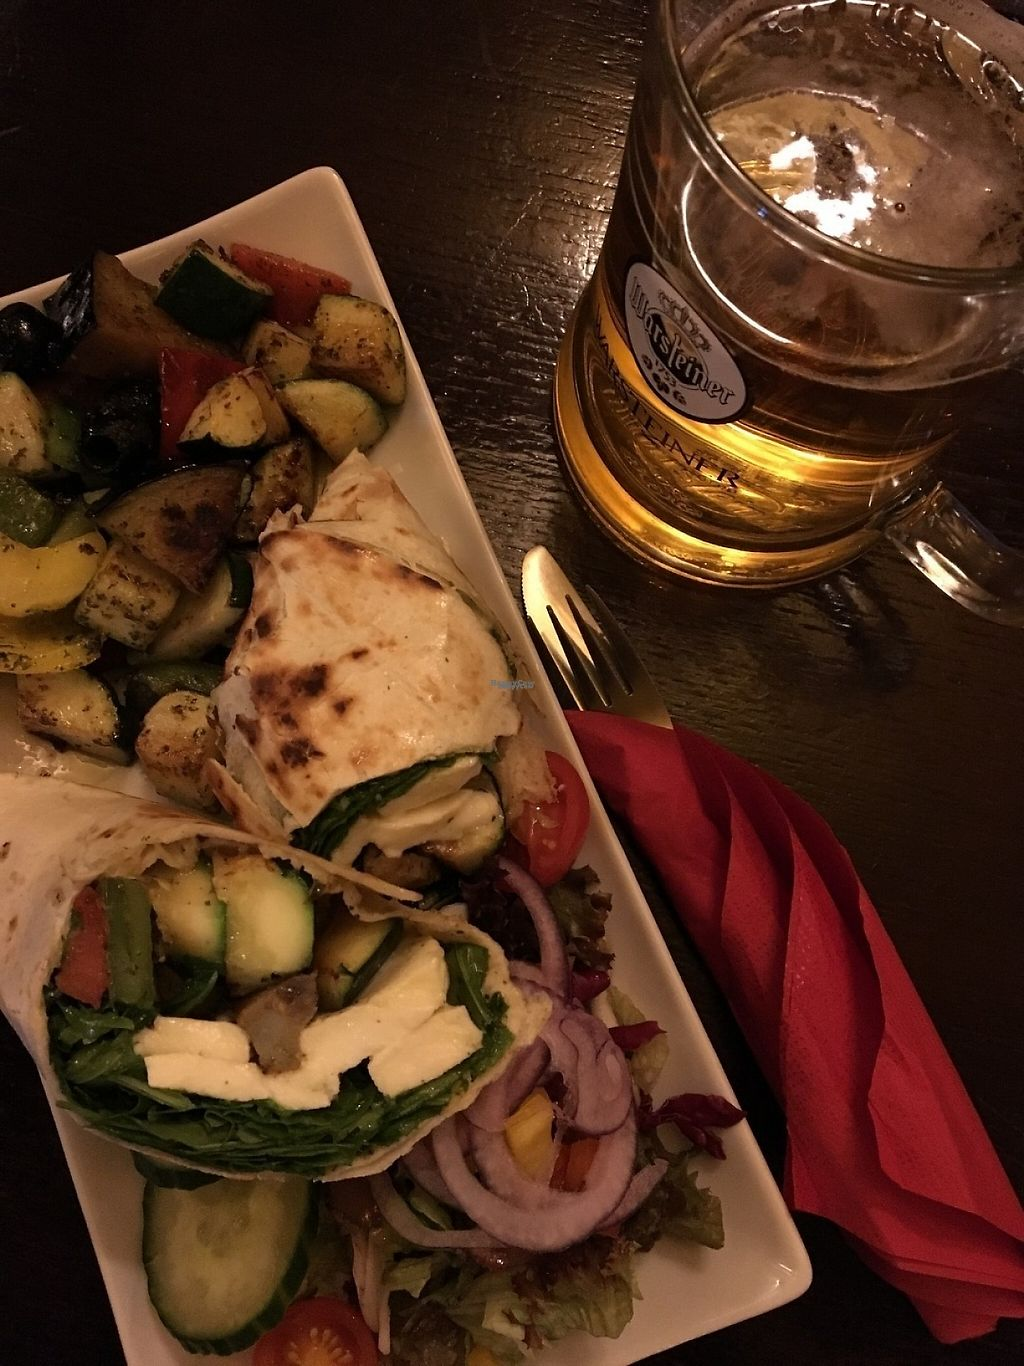 """Photo of Finnegan's Irish Pub  by <a href=""""/members/profile/tcsengusz"""">tcsengusz</a> <br/>Grilled veggie wrap w/ mozarella <br/> January 13, 2017  - <a href='/contact/abuse/image/85521/211757'>Report</a>"""